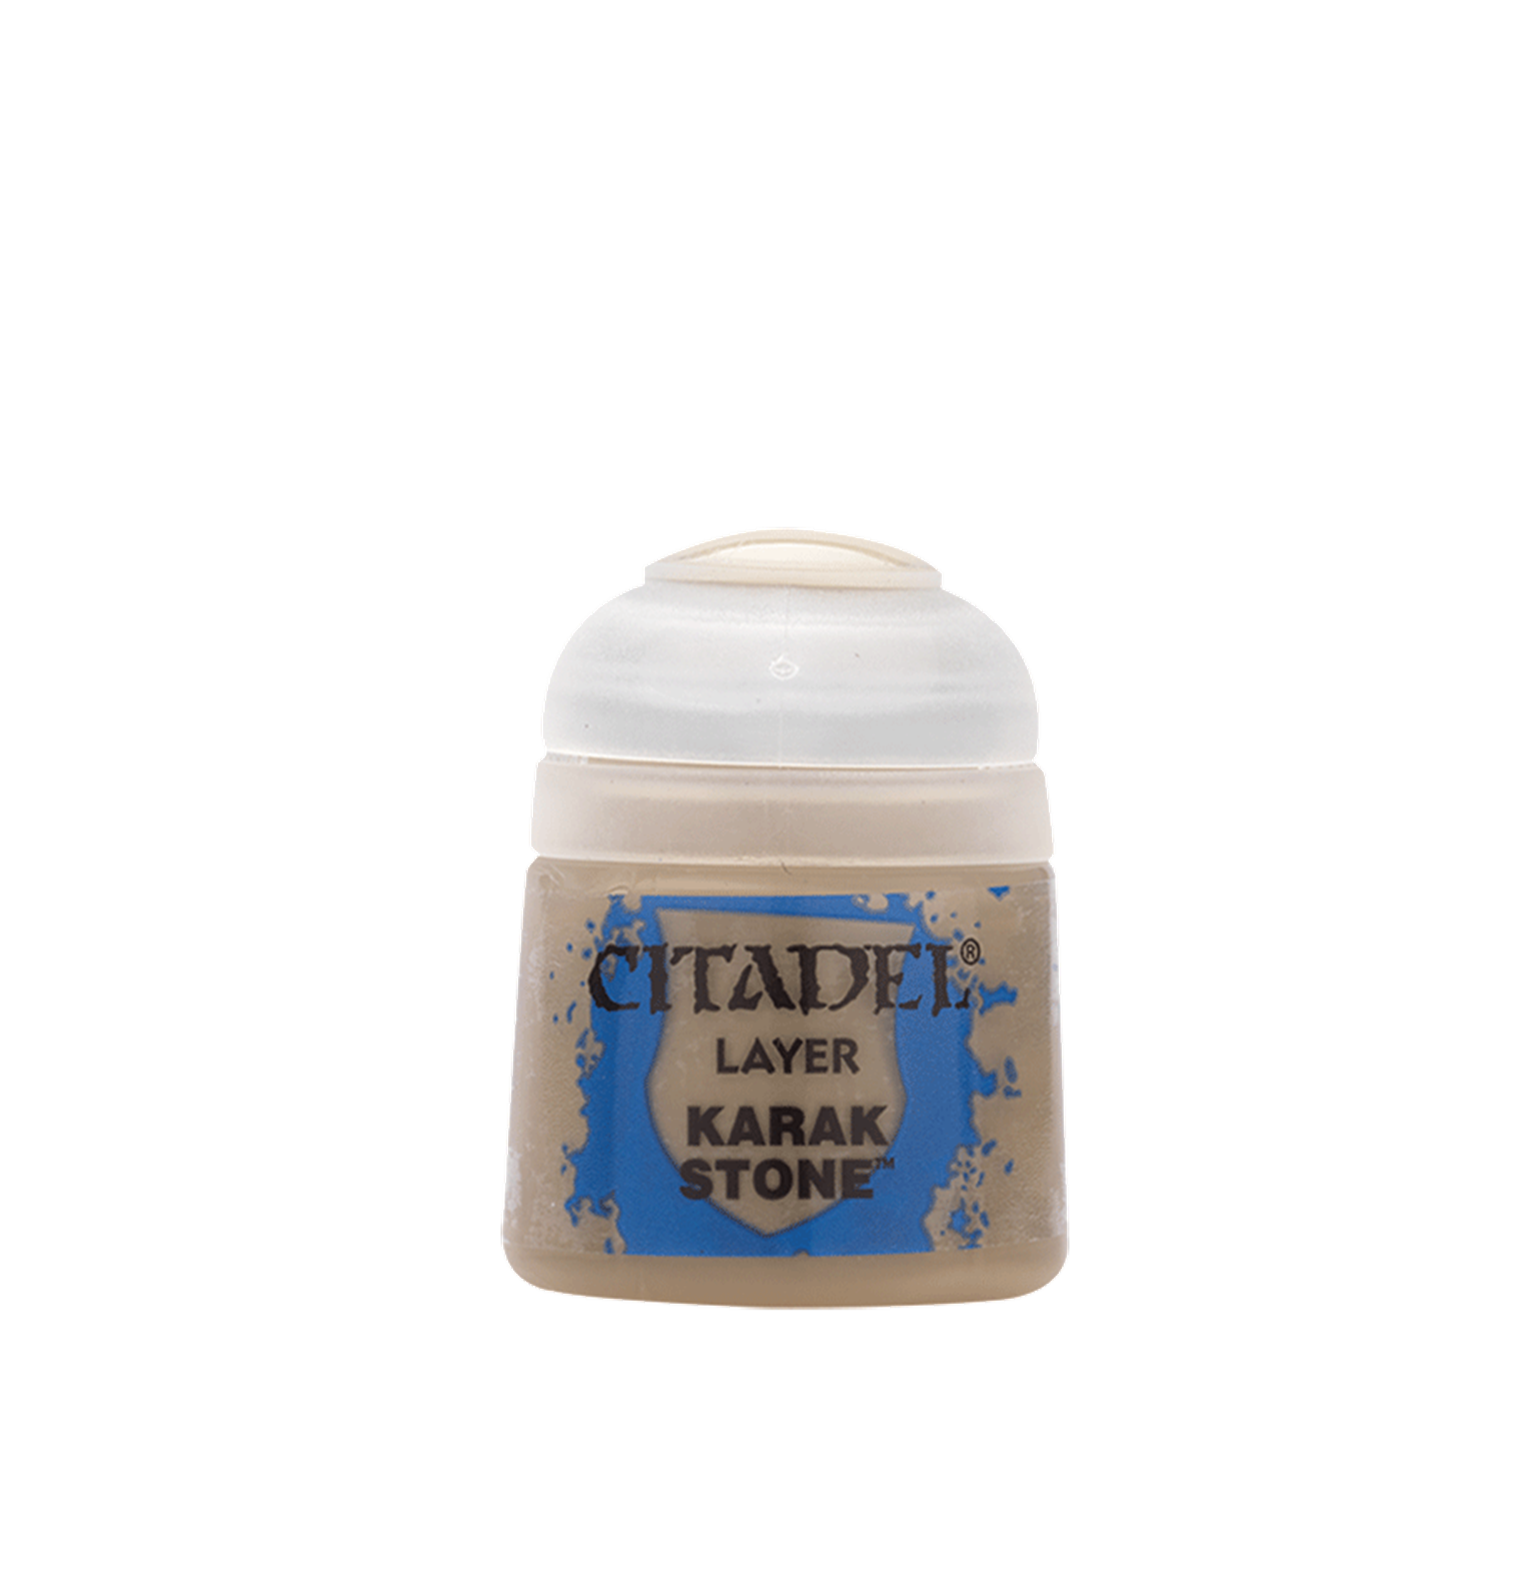 CITADEL LAYER Karak Stone PAINT POT